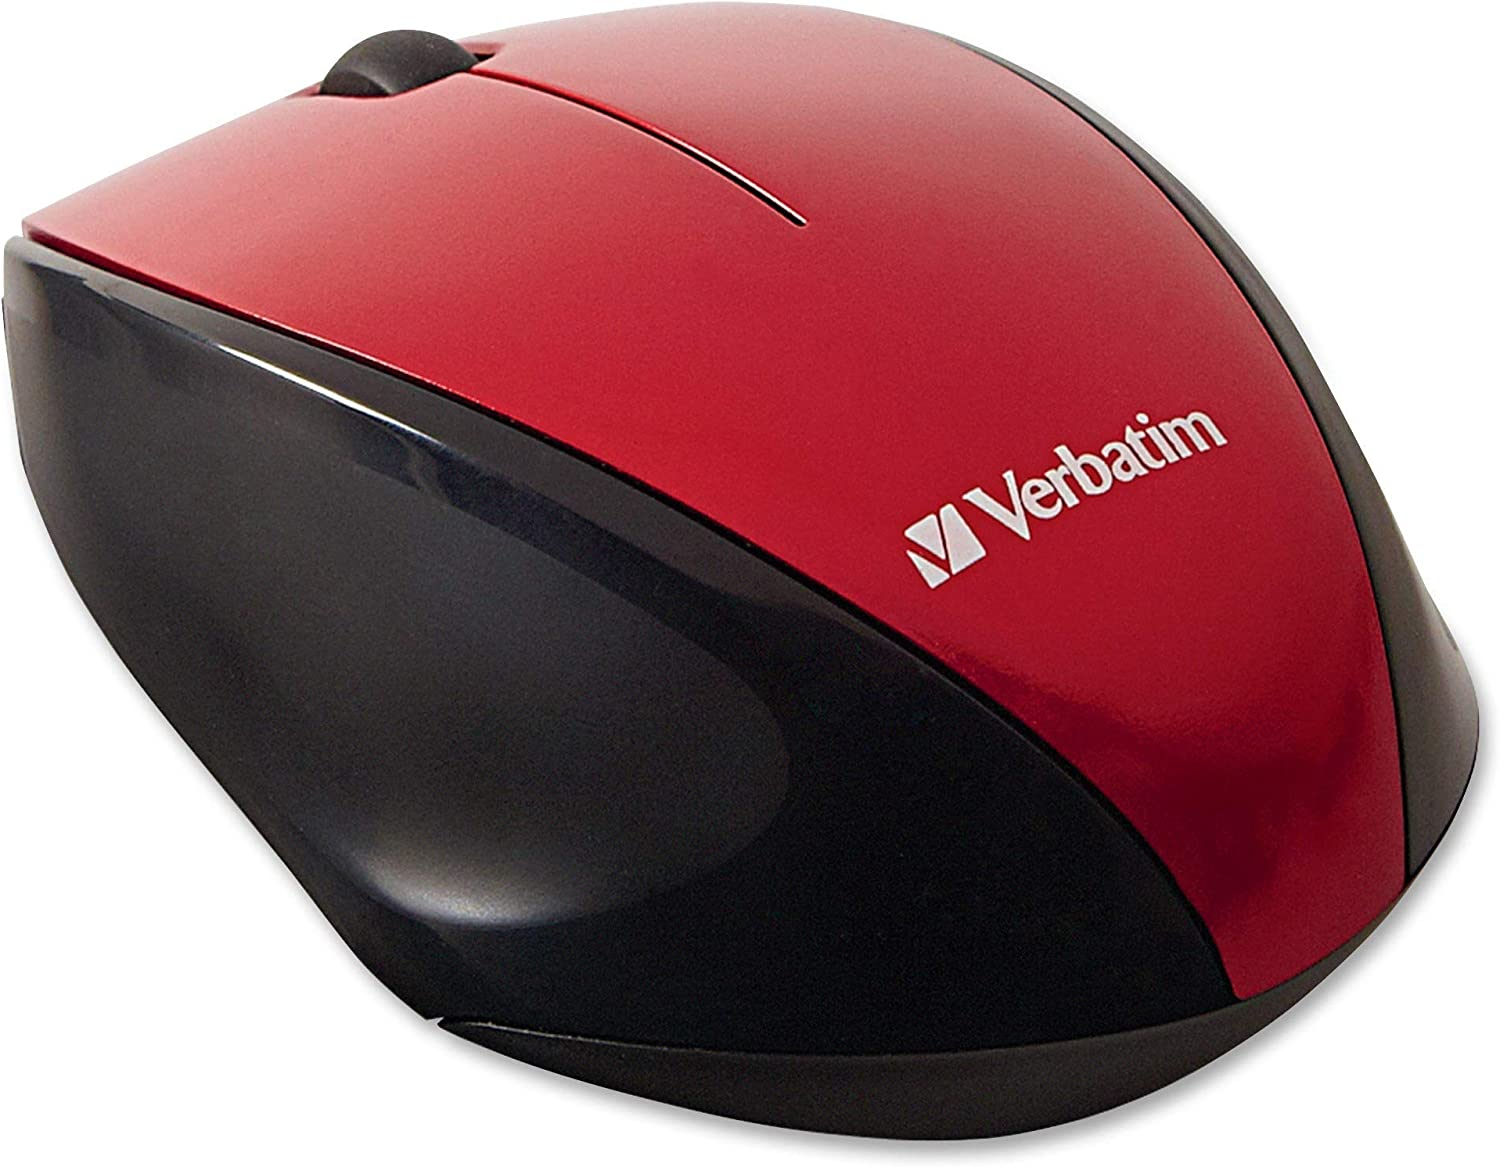 Red VER97995 Verbatim Wireless Notebook Multi-Trac Blue LED Mouse